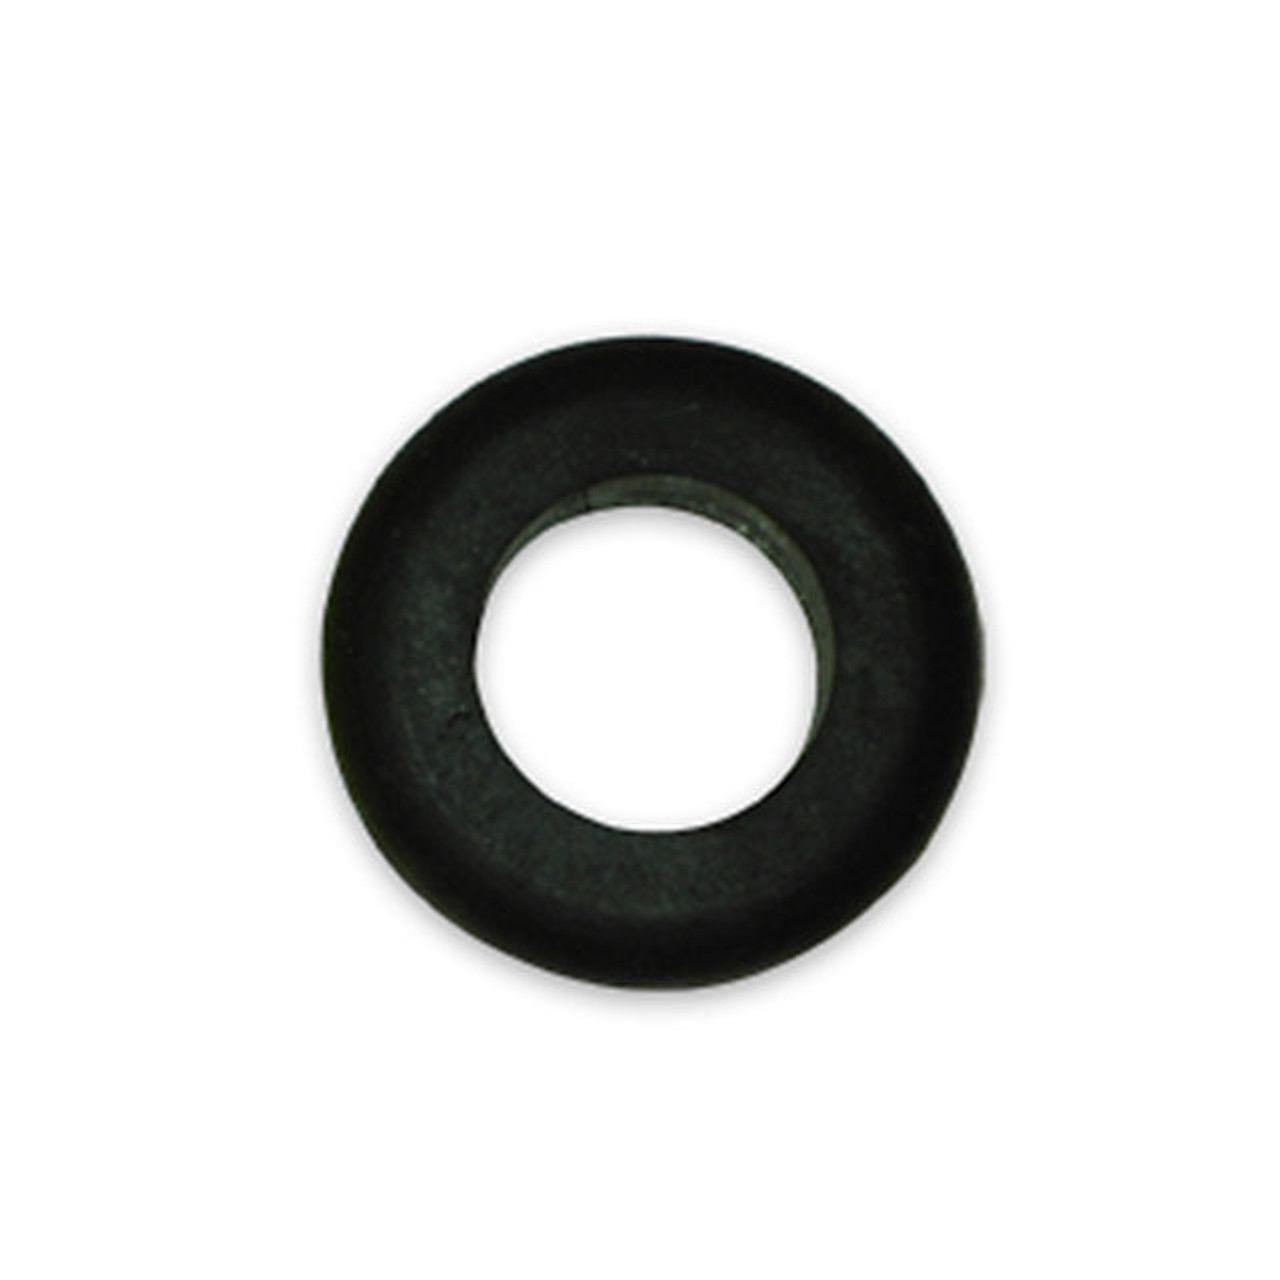 "GROMMET 1 1/4"" HOLE 7/8"" ID 3/16"" PANEL"